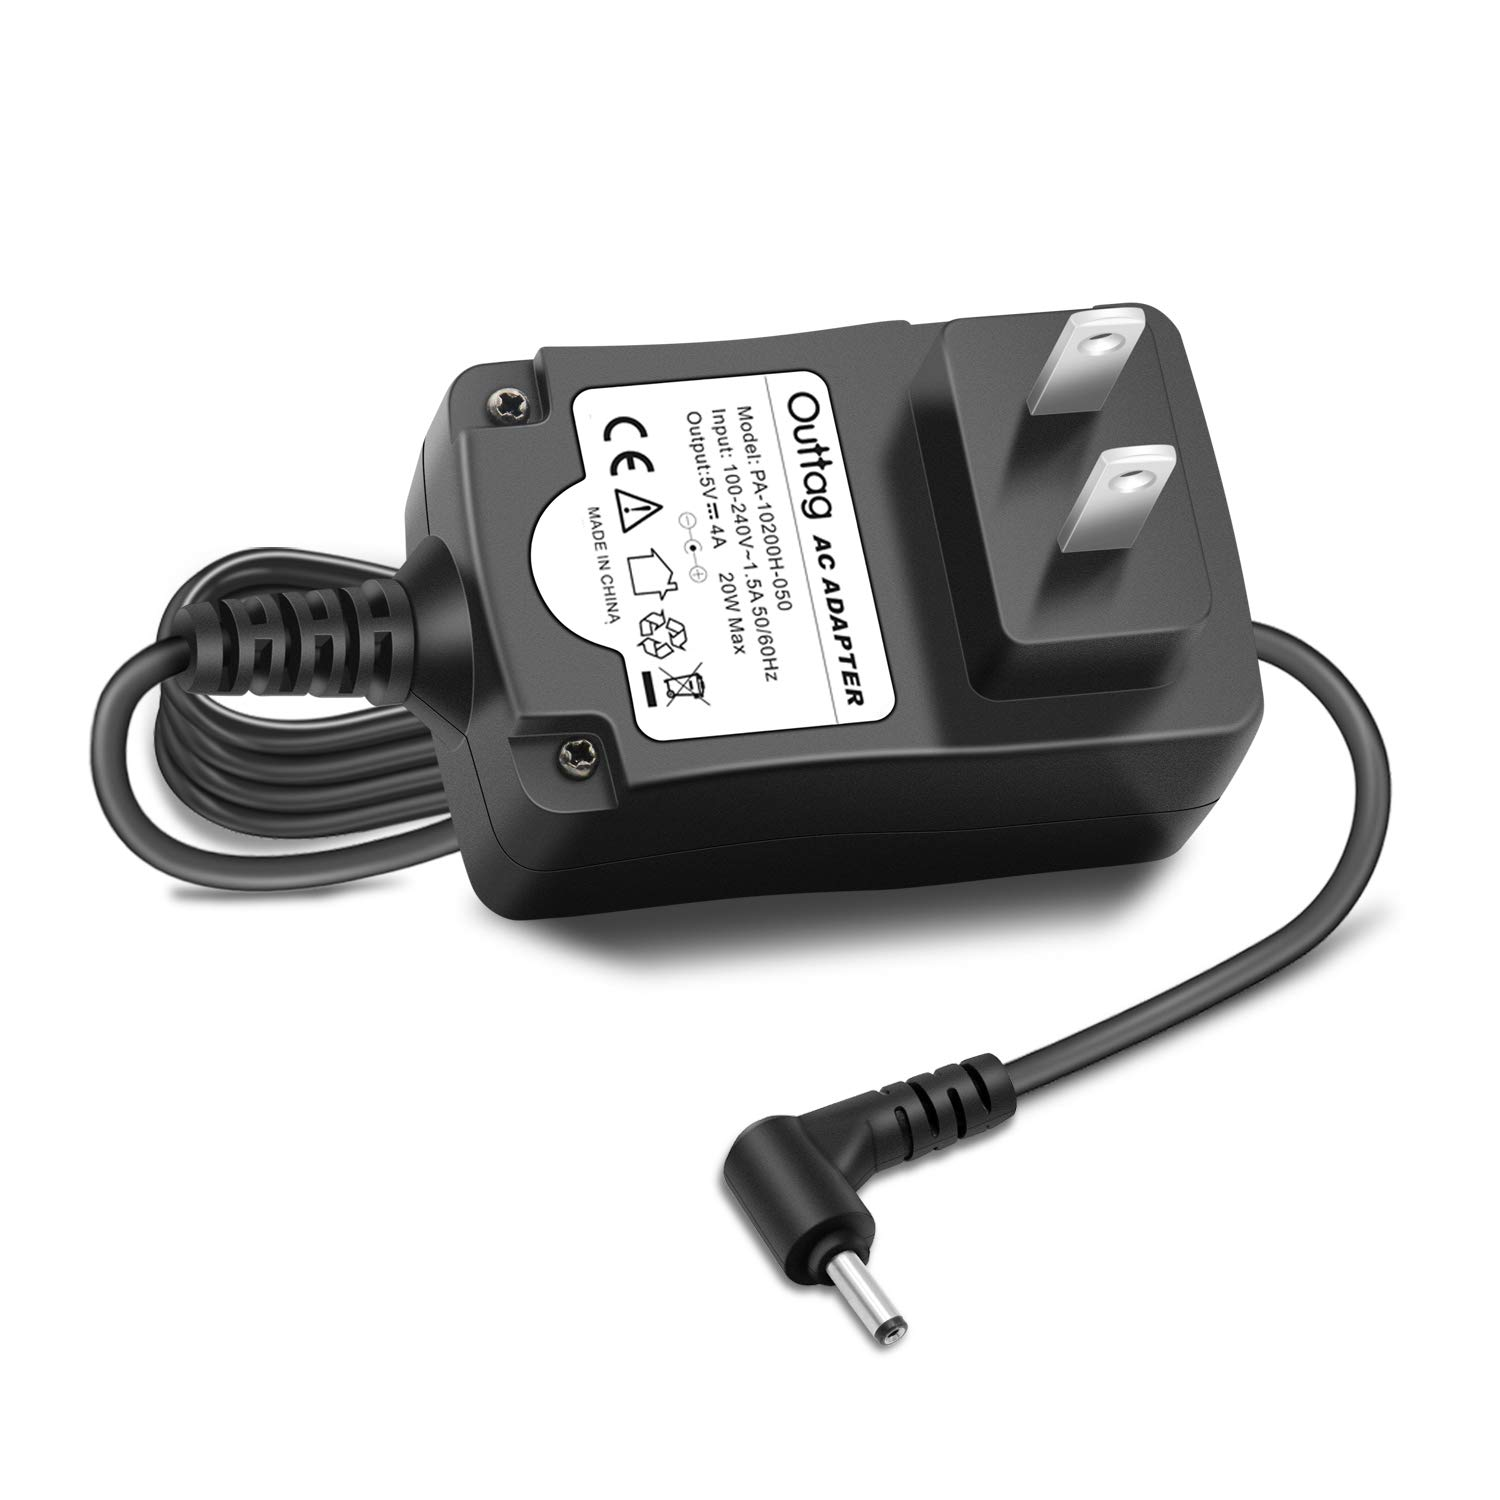 """Outtag 20W 5V 4A Laptop Charger Power Adapter for Lenovo Ideapad 100S 100S-11IBY 80R2,100S 11.6"""" Intel Atom Z3735F, ADS-25SGP-06 05020E GX20K74302 Miix 310-10ICR 80SG001FUS Power Supply Cord"""